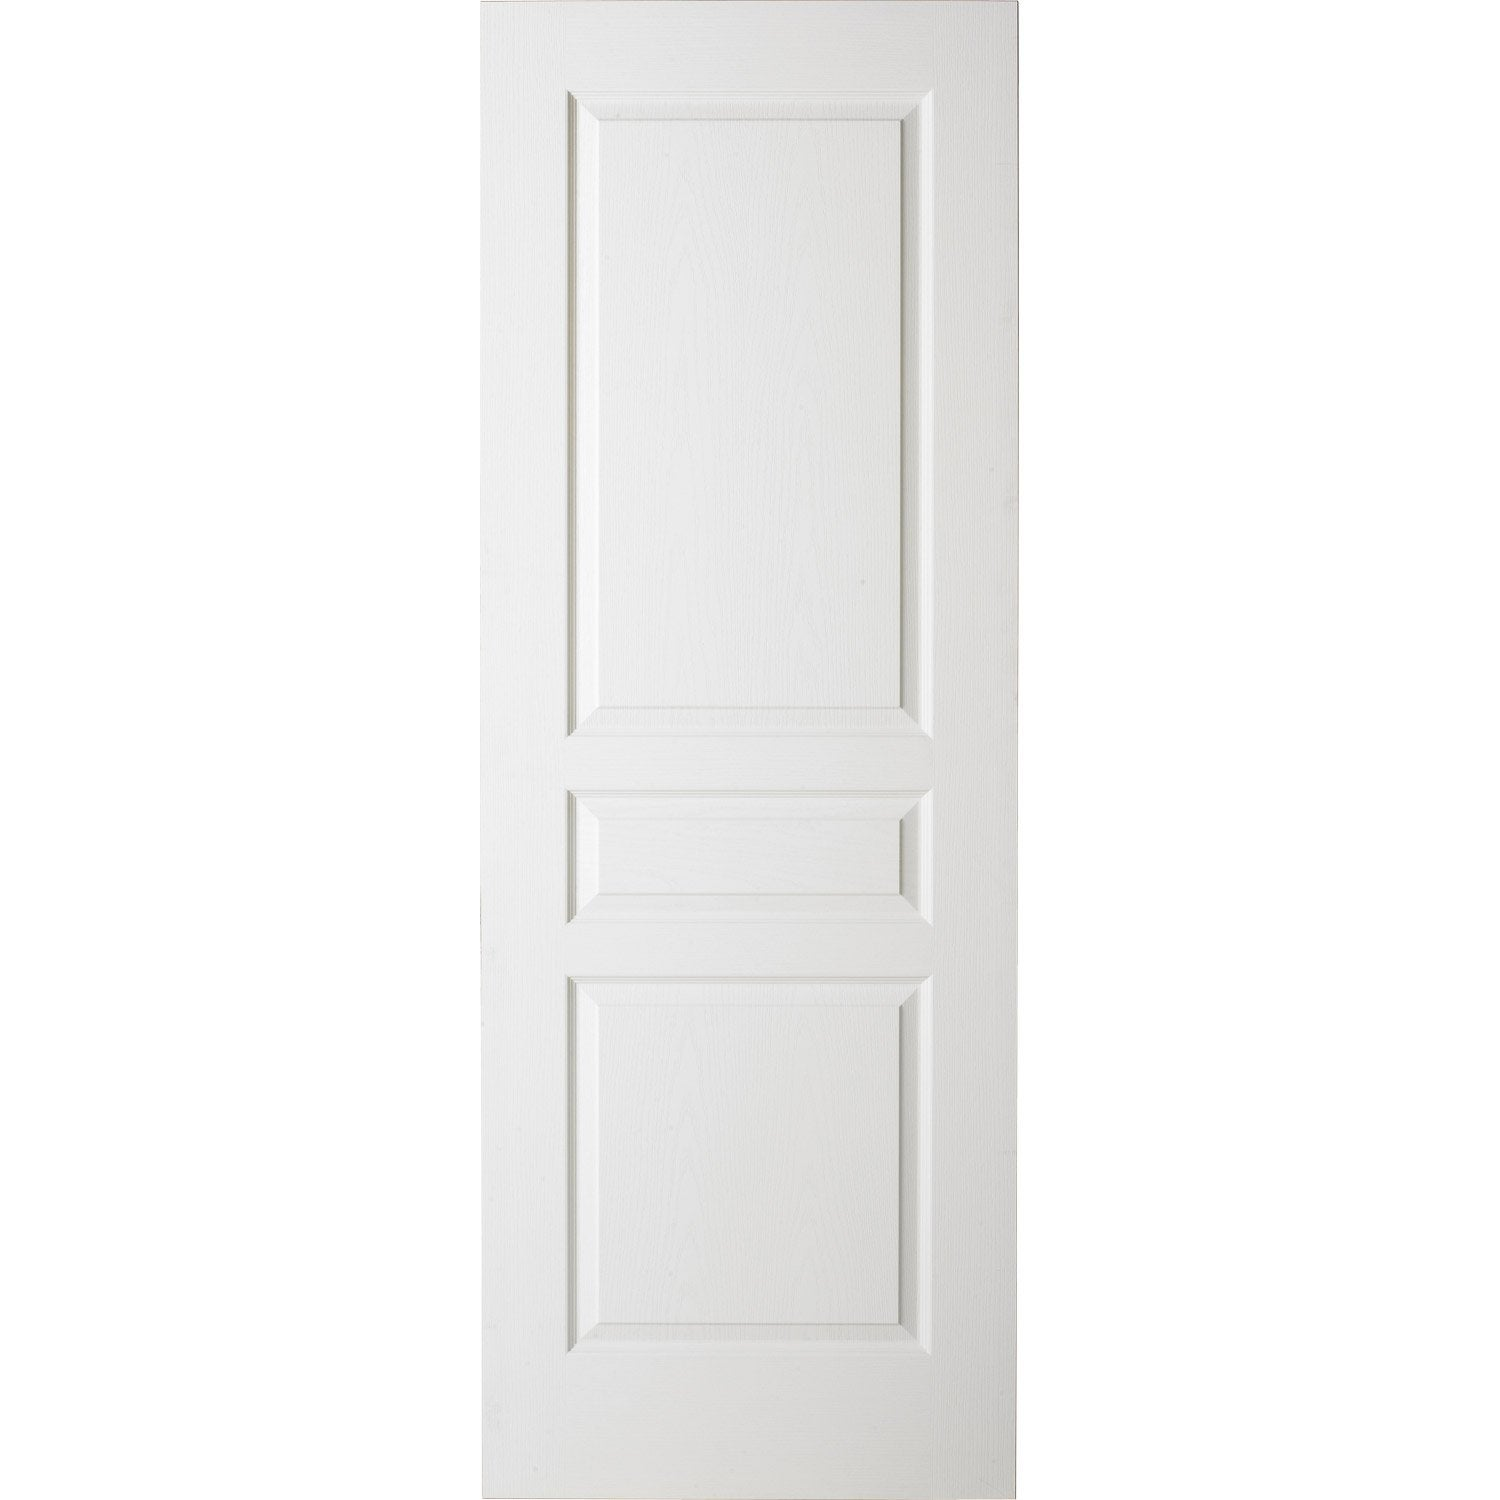 Porte coulissante blanc postform e traverse droite 204 x 93 cm leroy merlin for Porte 93 cm coulissante